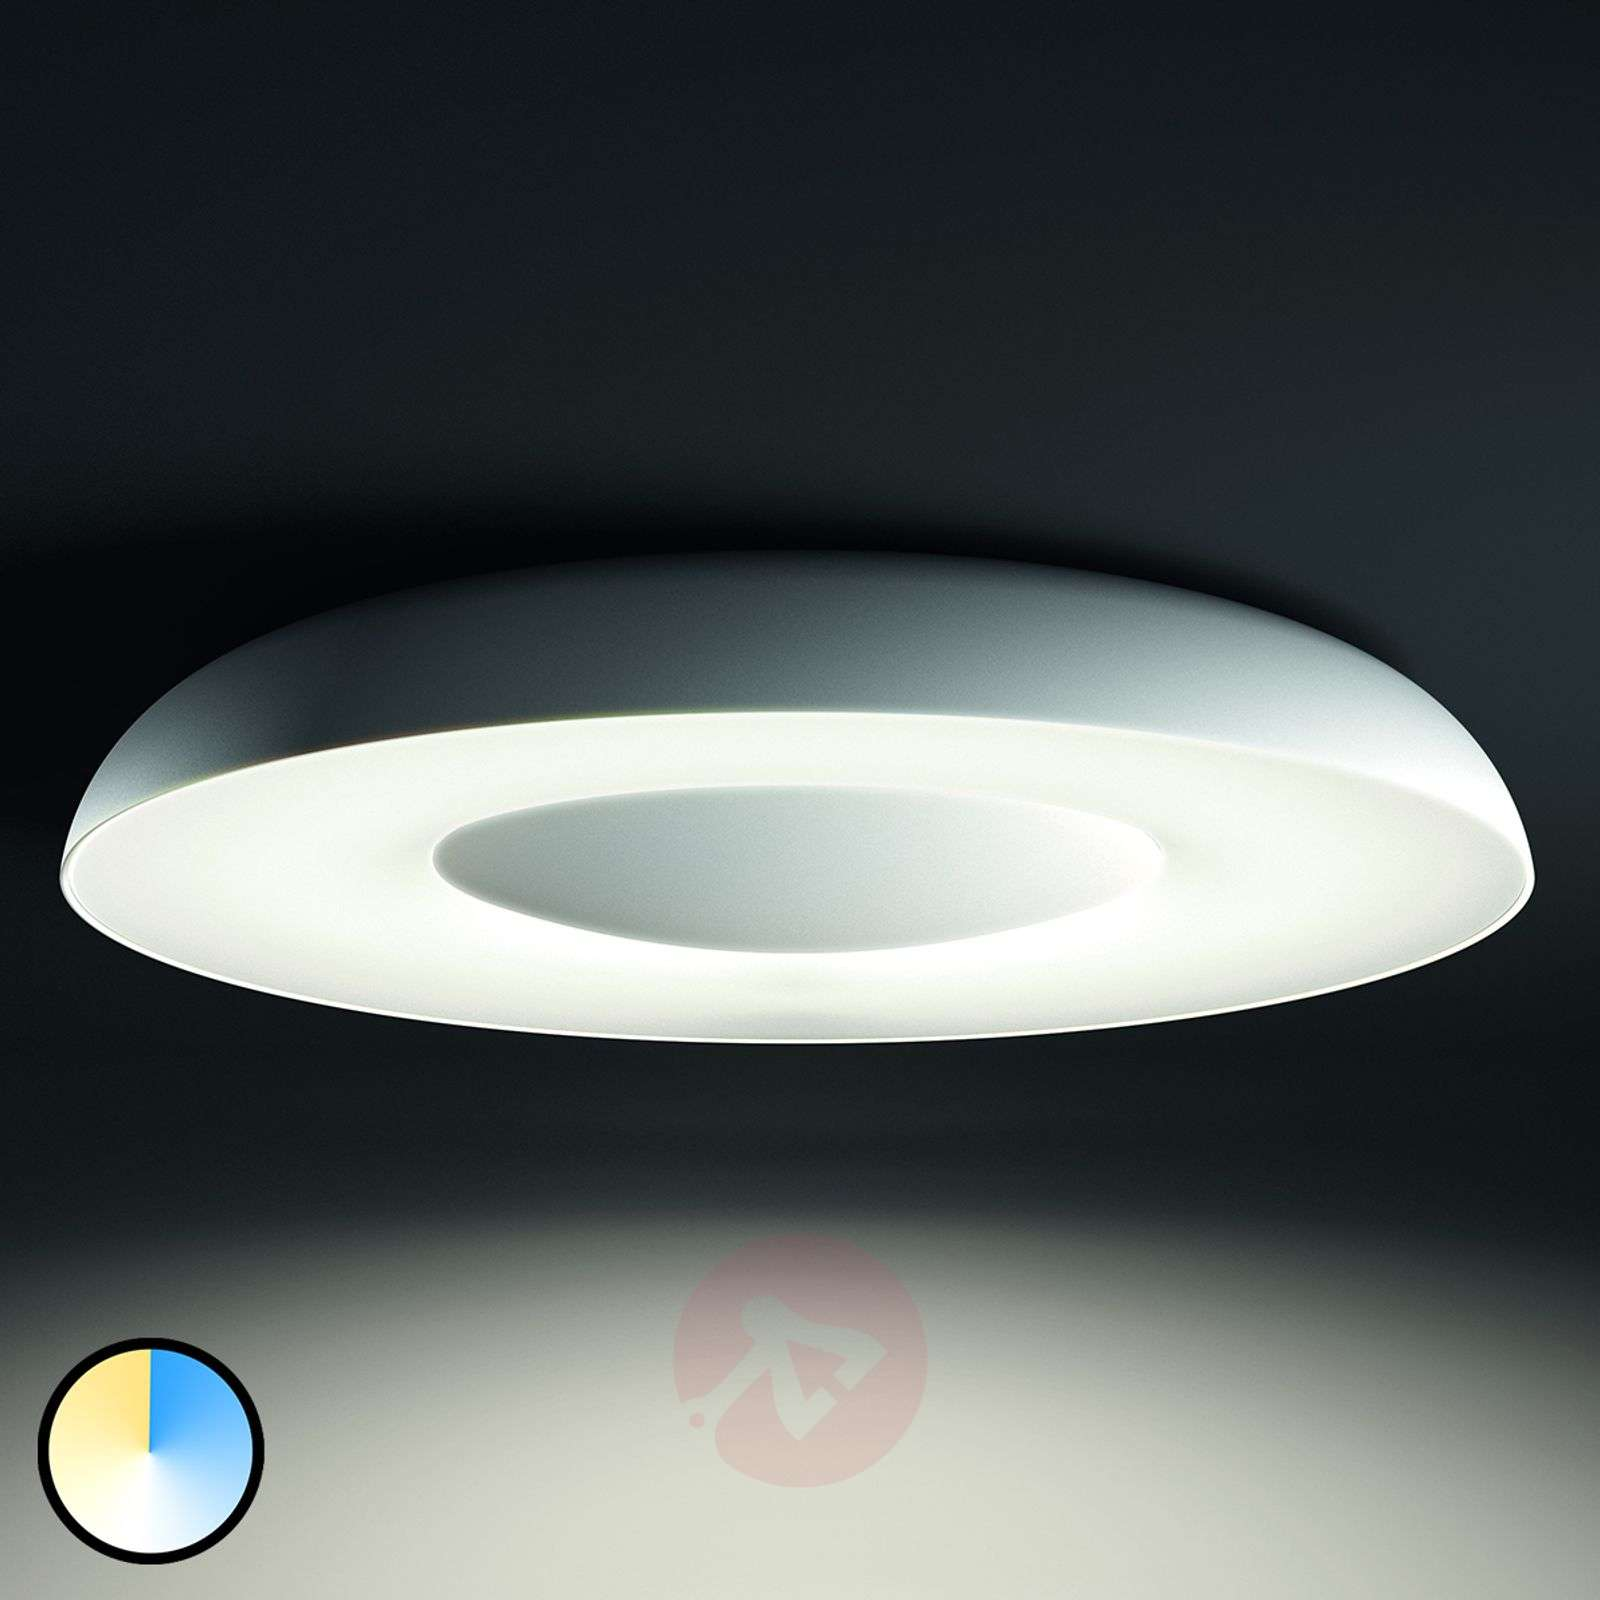 Plafoniere A Led Per Bagno Philips : Acquista plafoniera a led still philips hue lampade.it